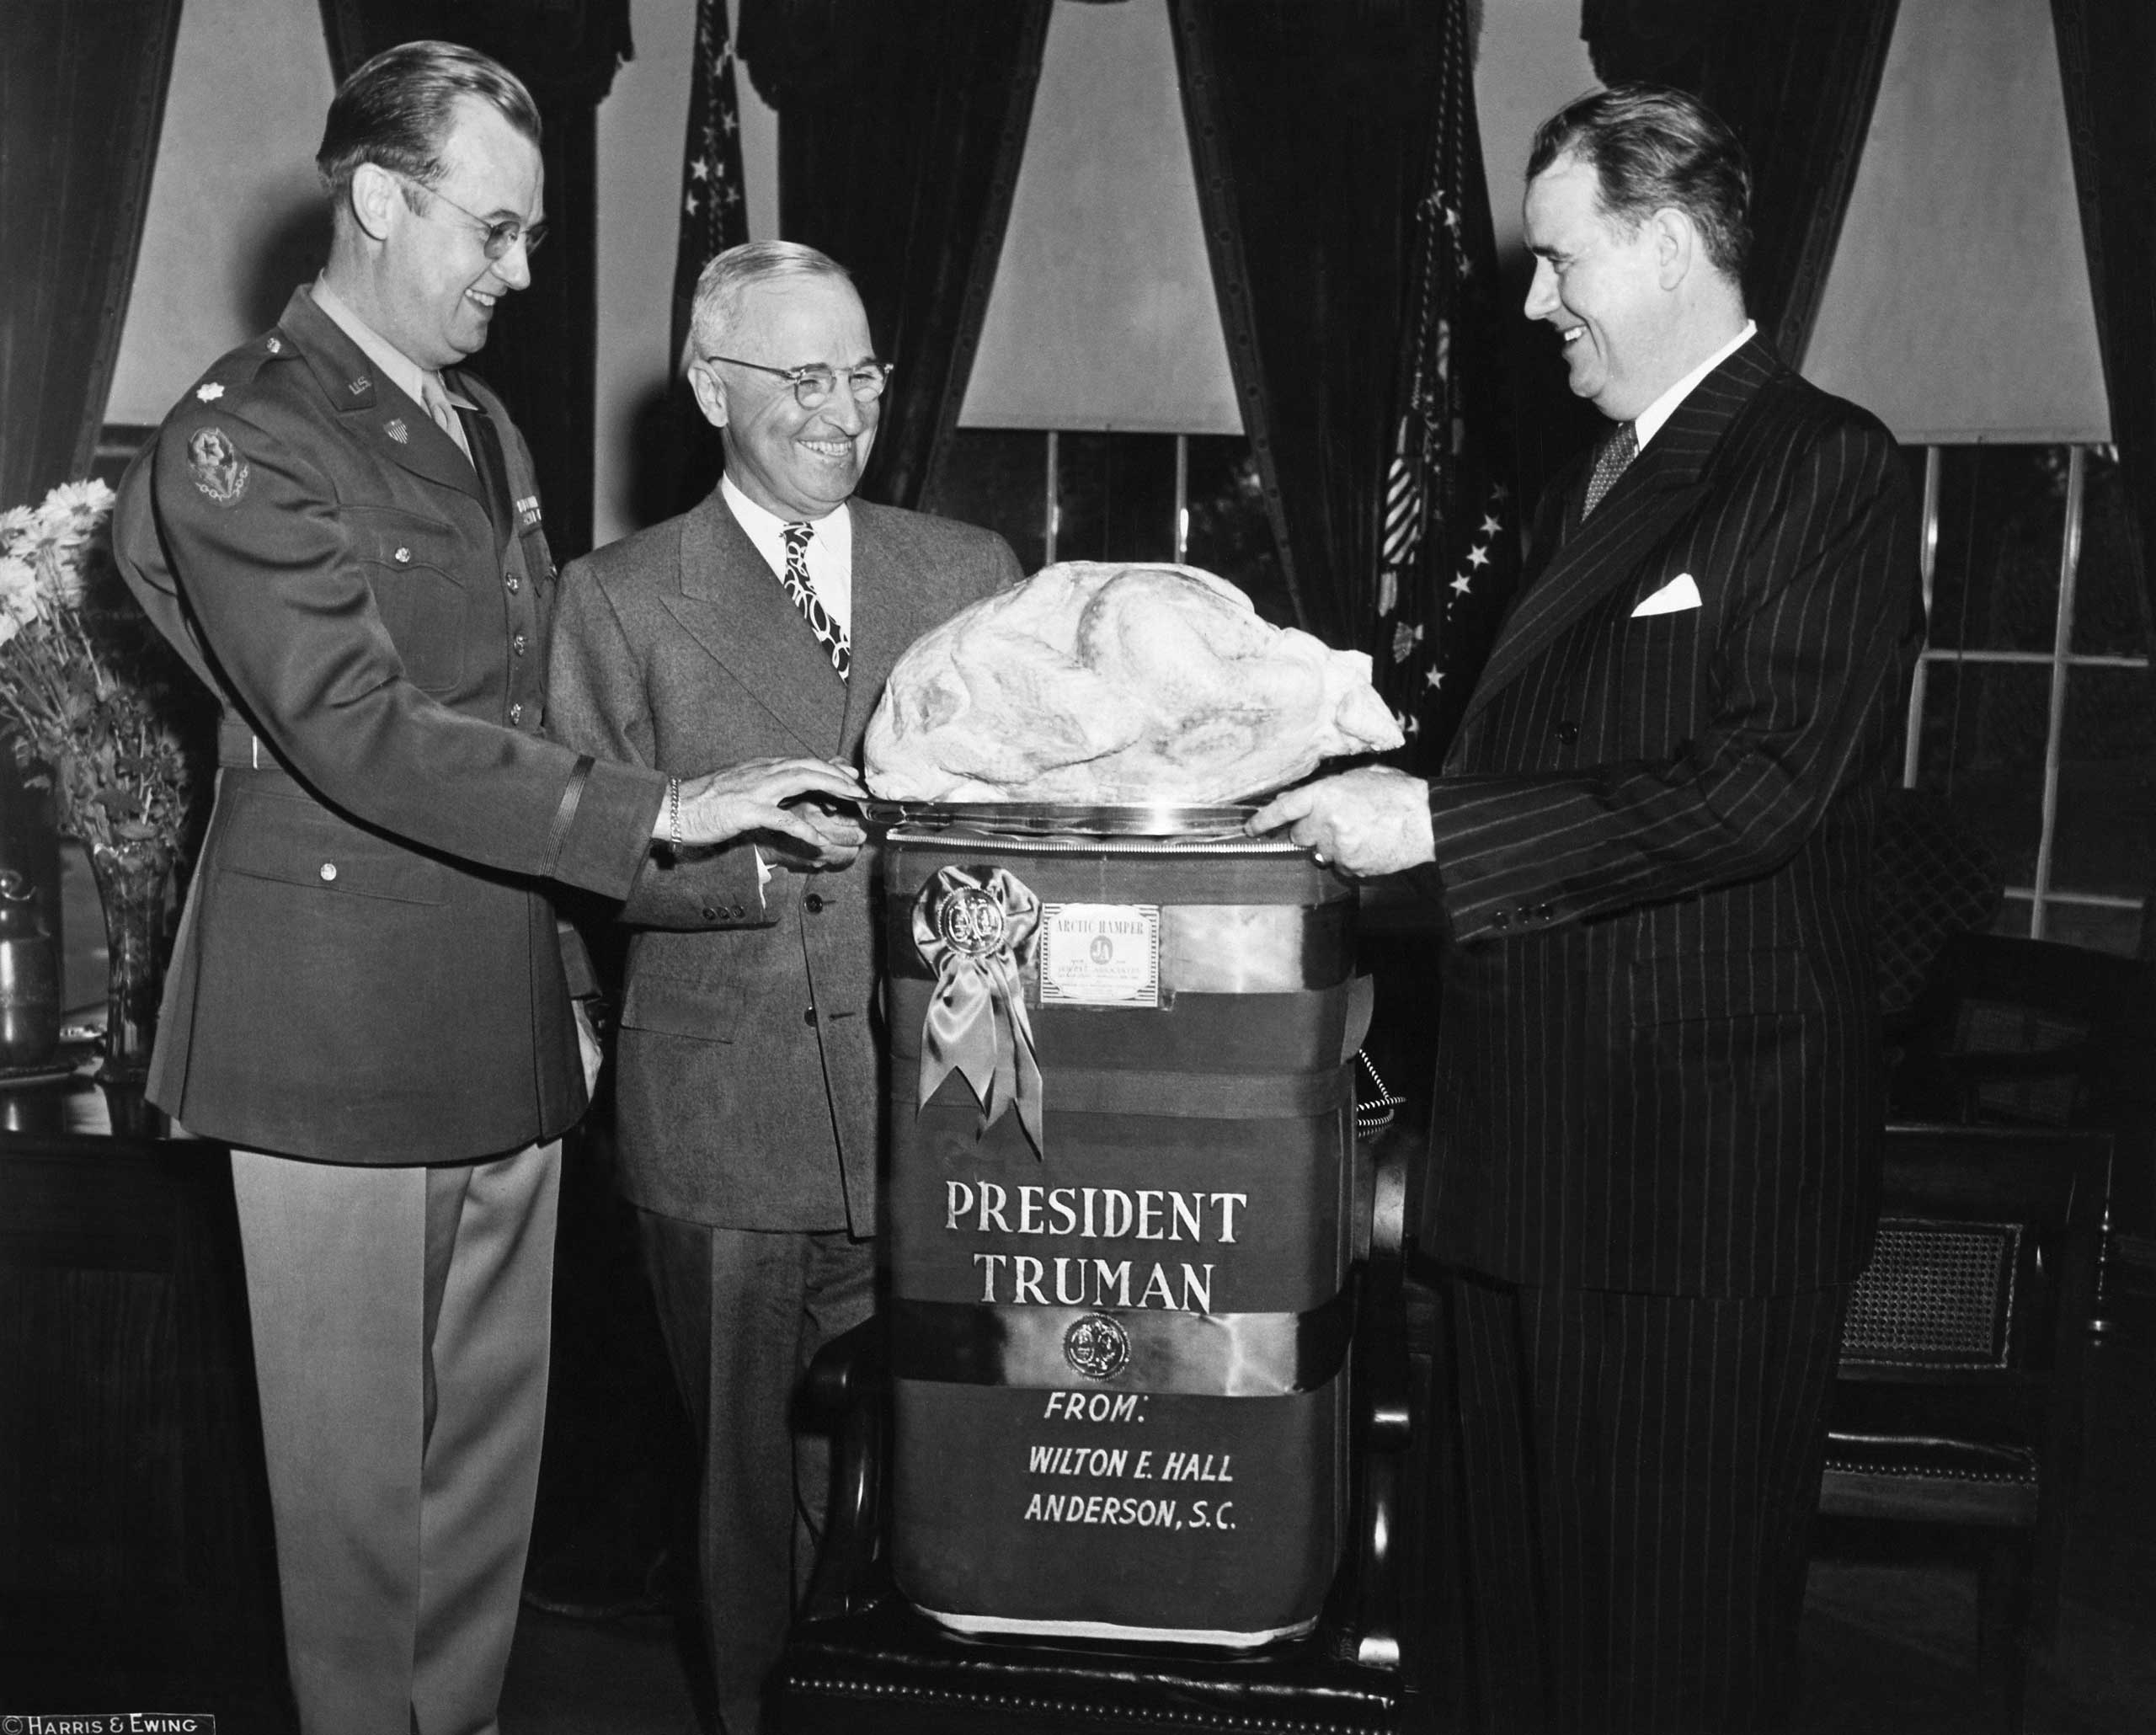 President Truman receives the Thanksgiving Turkey In Washington D.C. on Nov. 25, 1946.